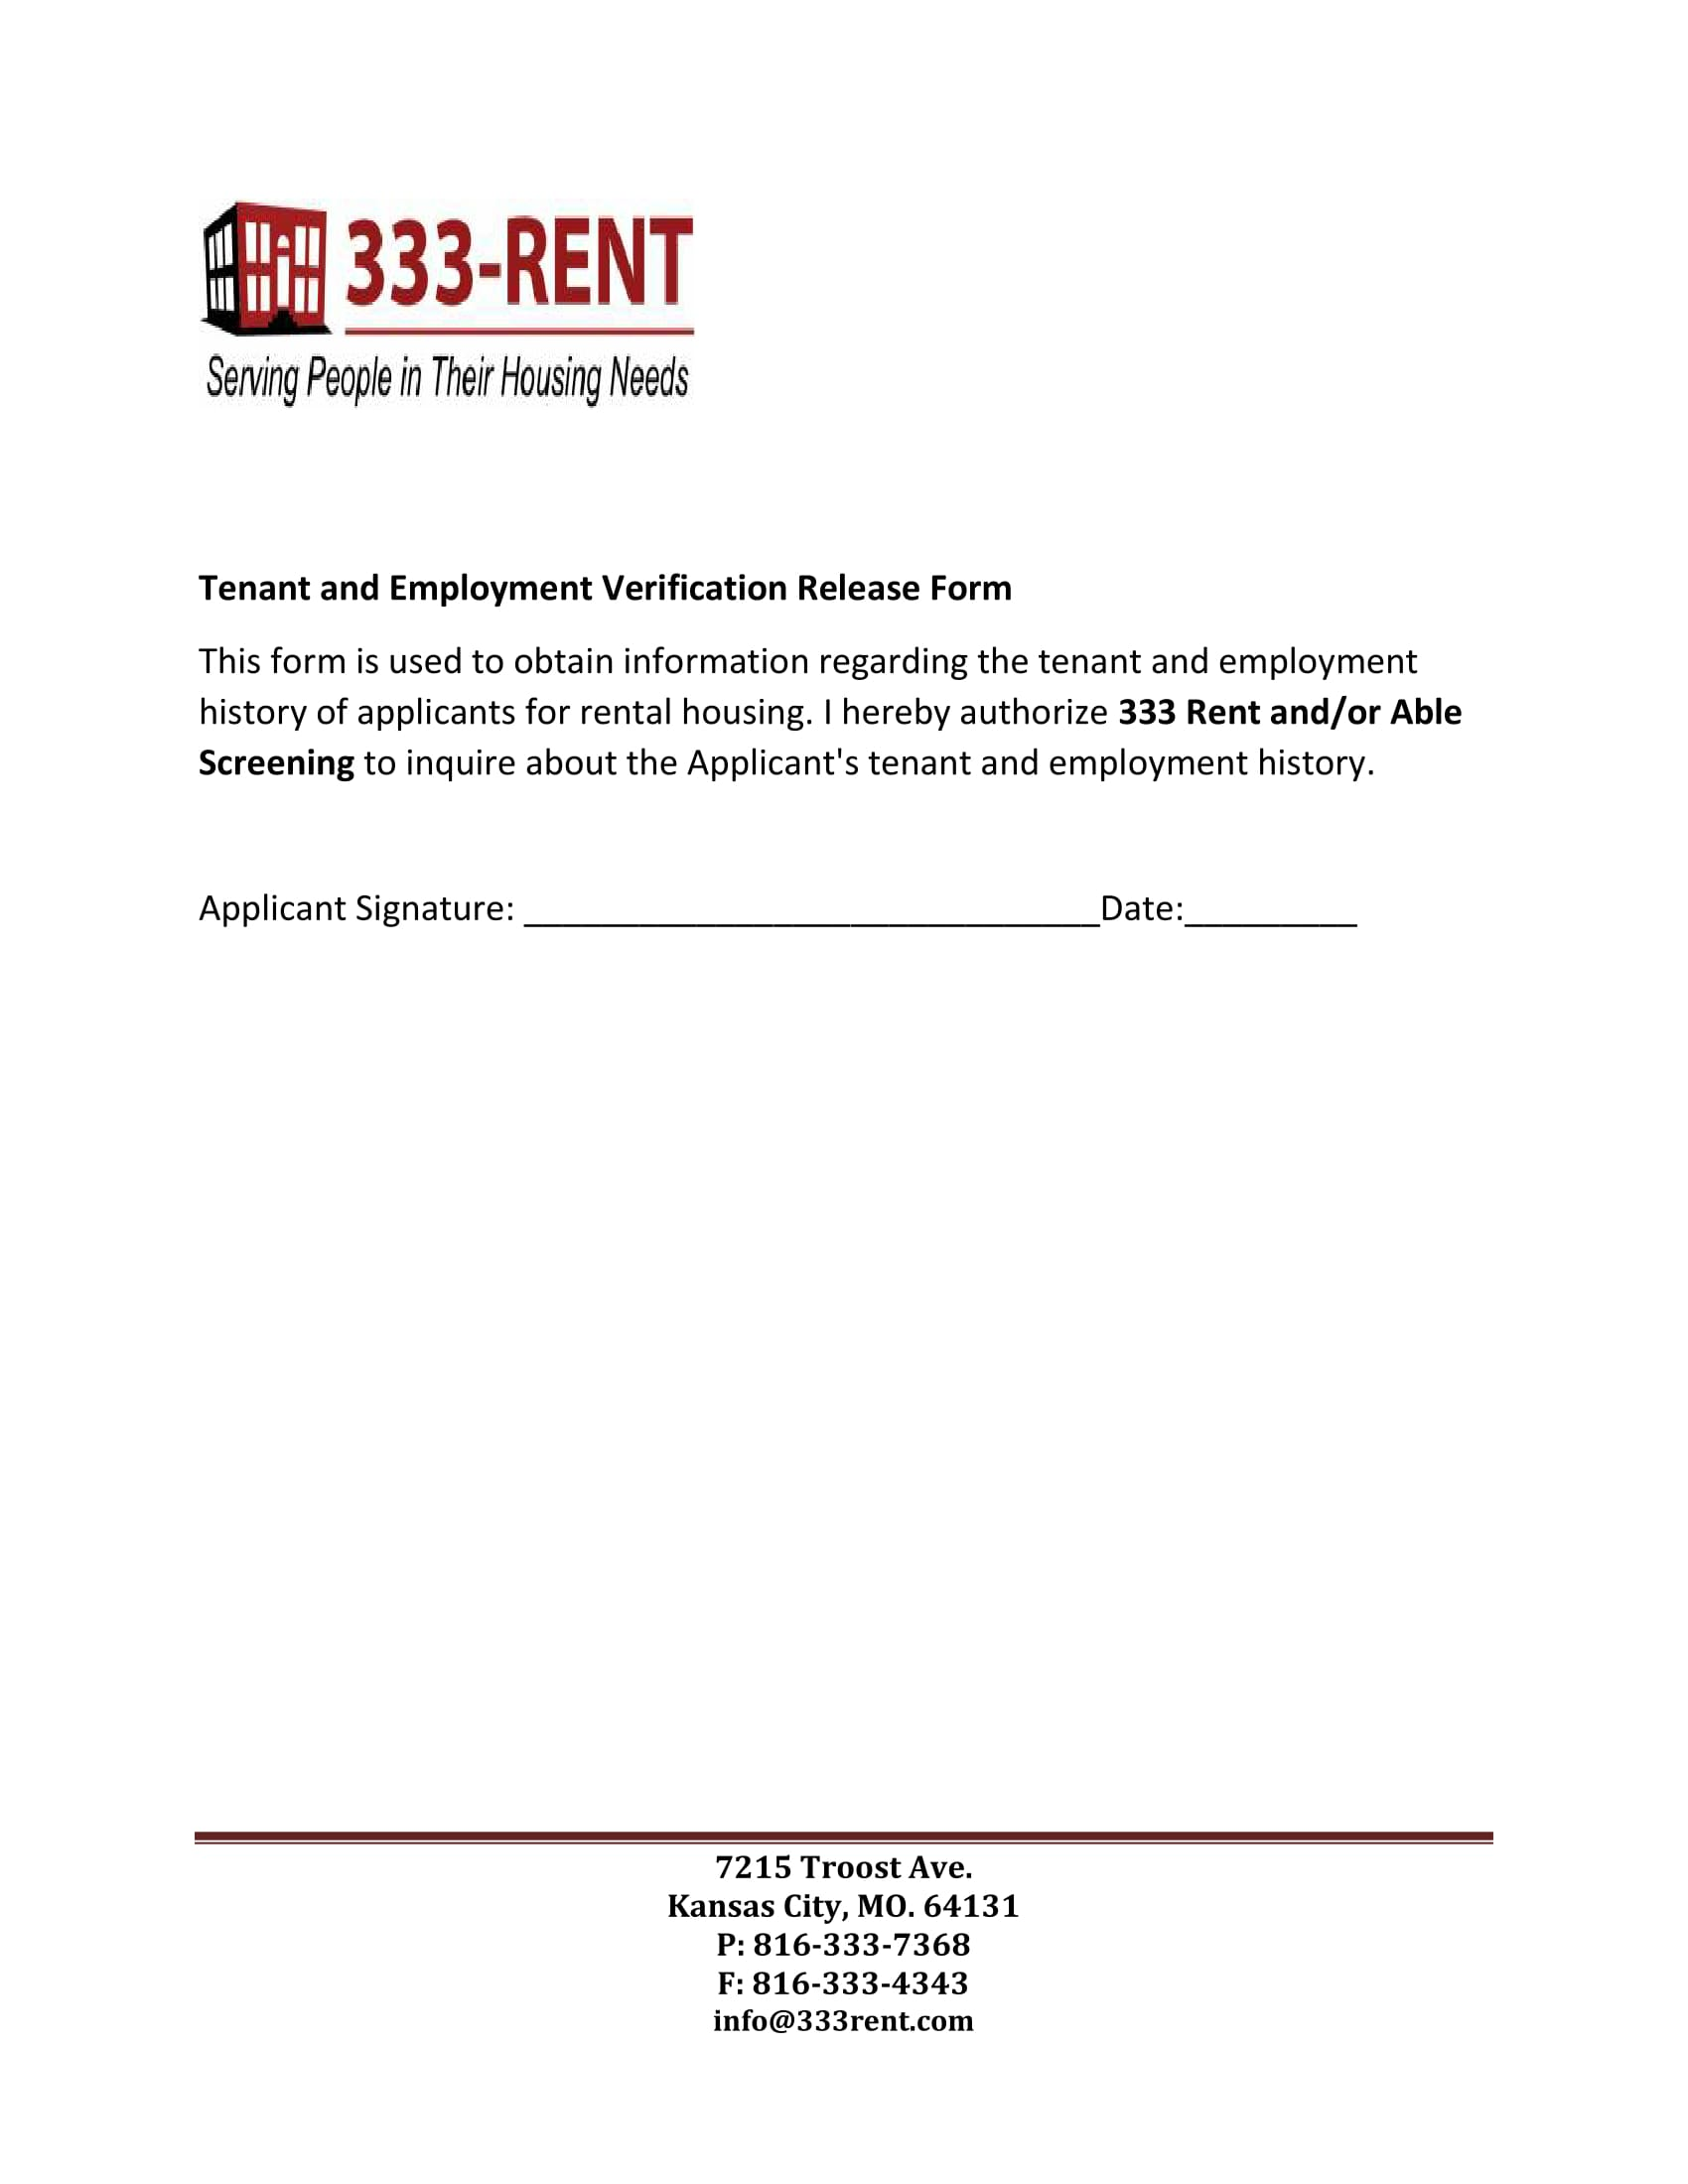 tenant employment verification release form 1